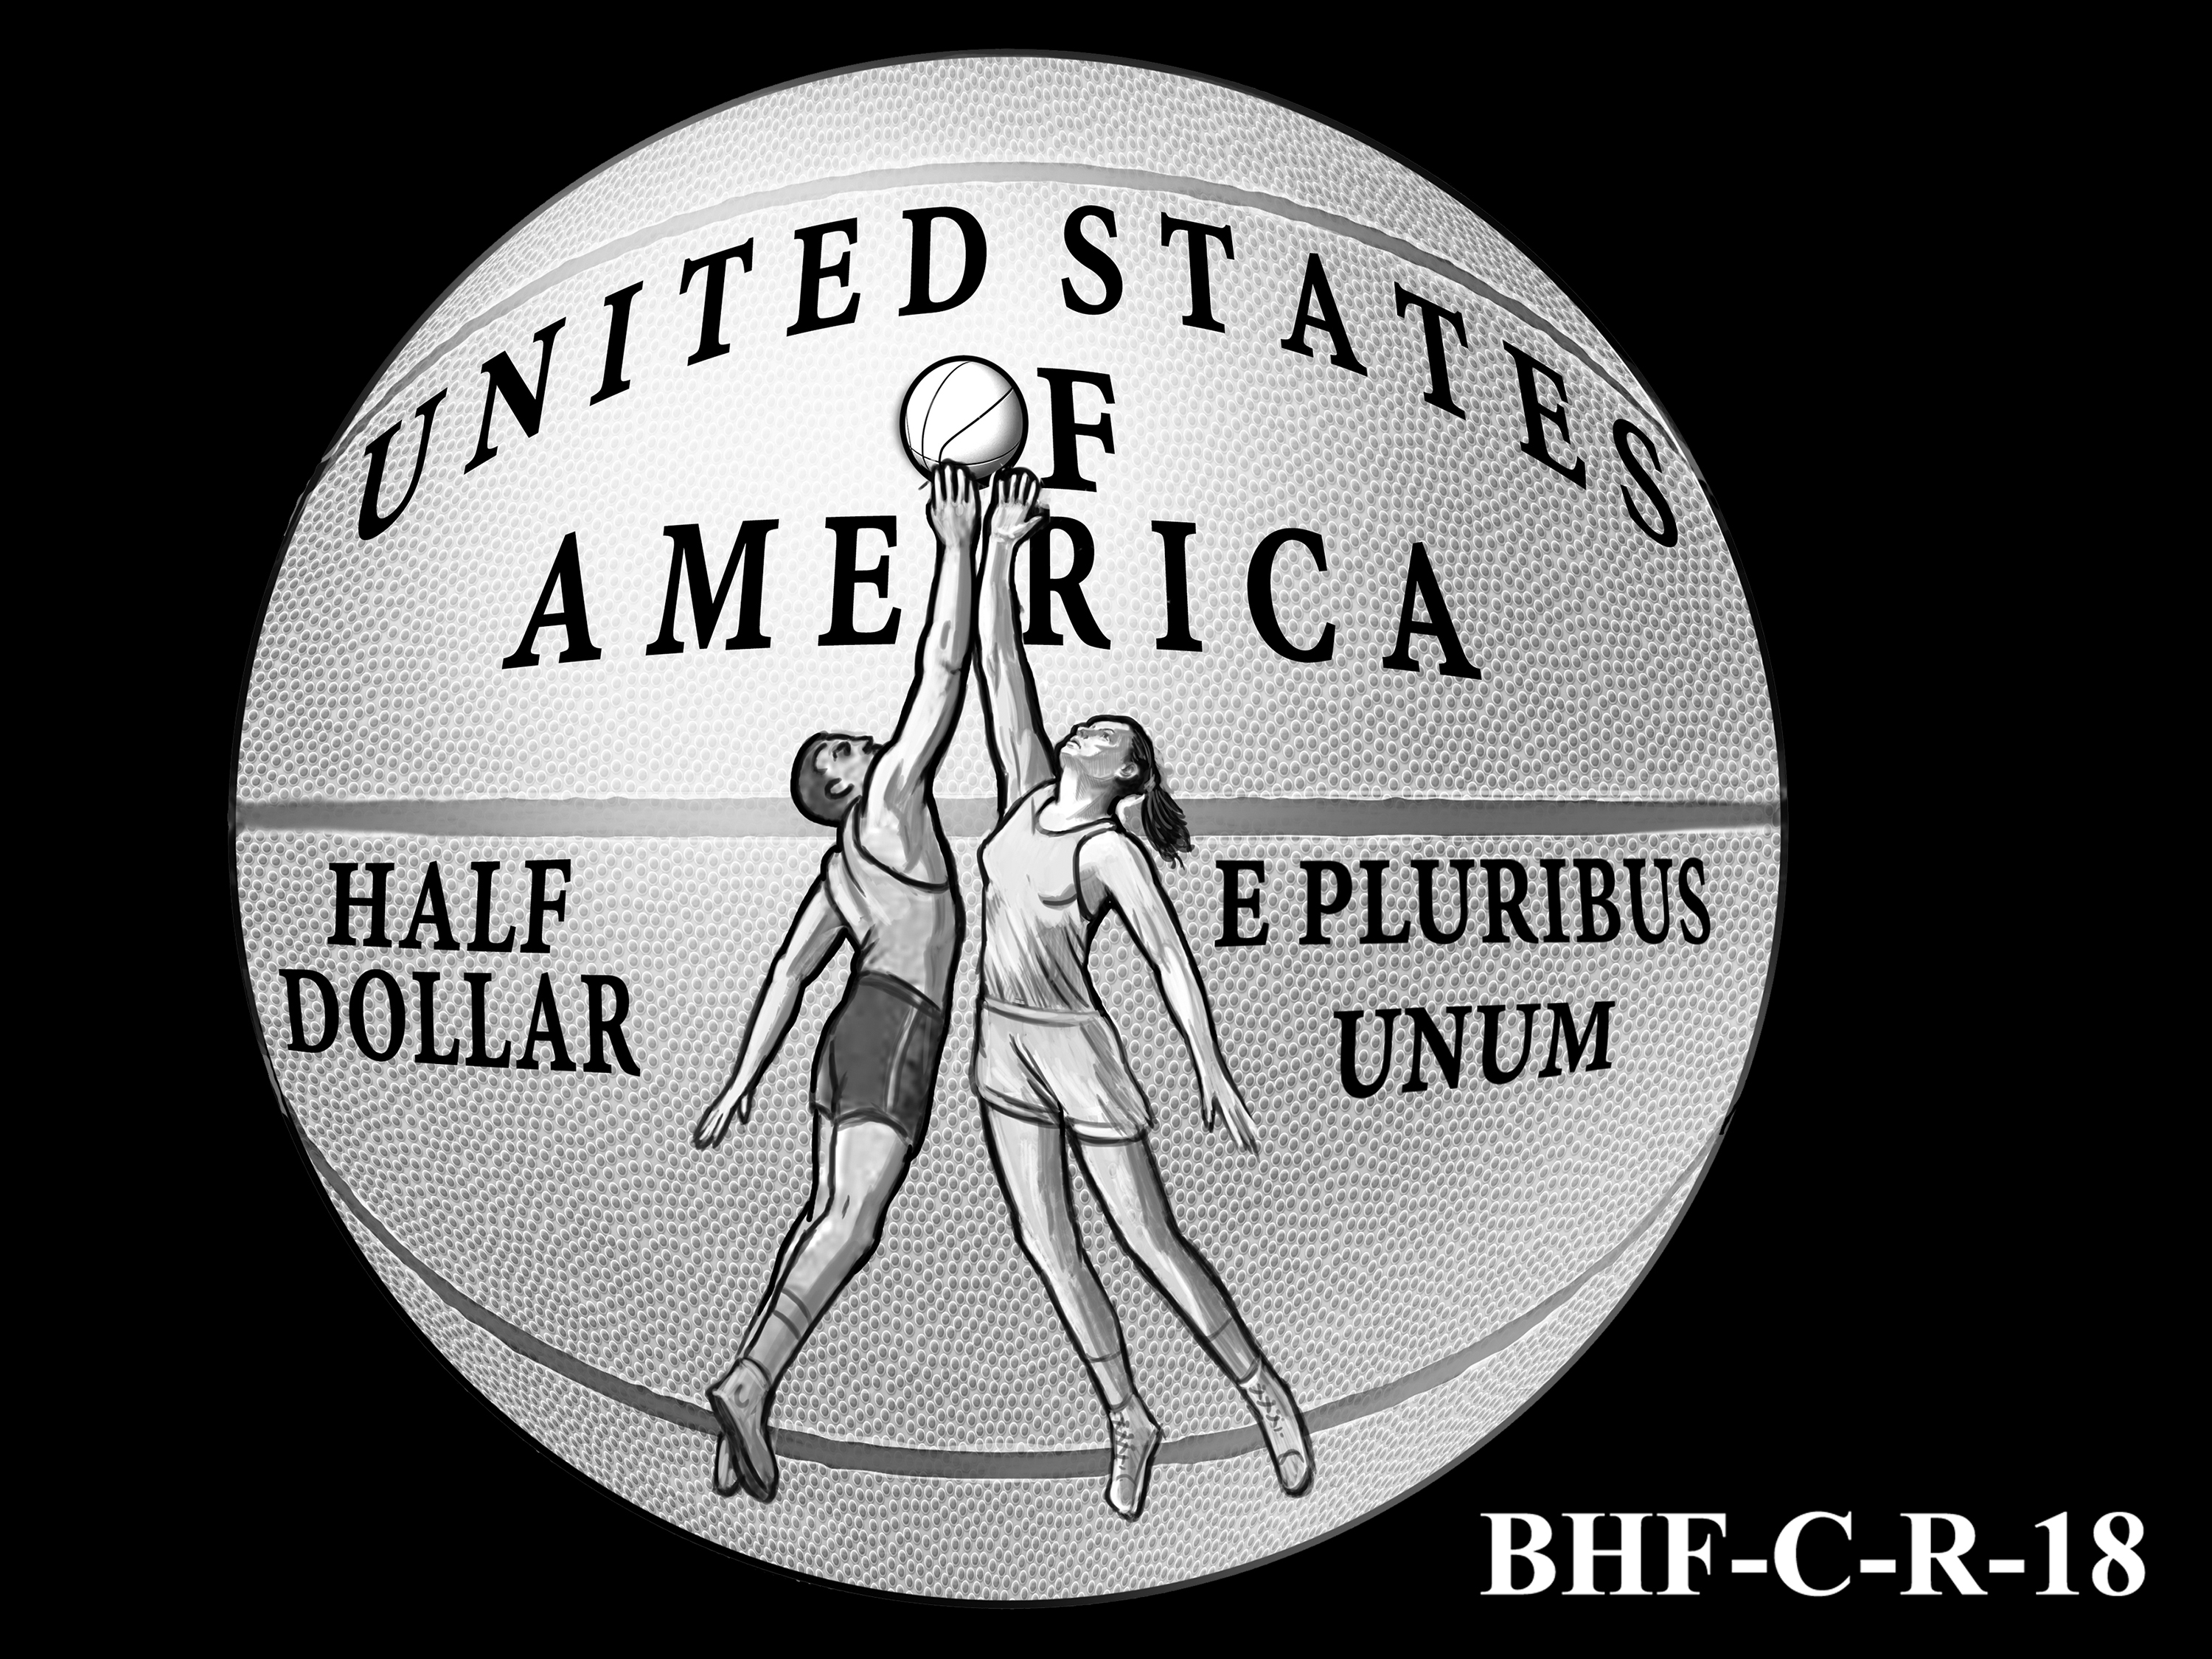 BHF-C-R-18 -- 2020 Basketball Hall of Fame Commemorative Coin Program - Clad Reverse